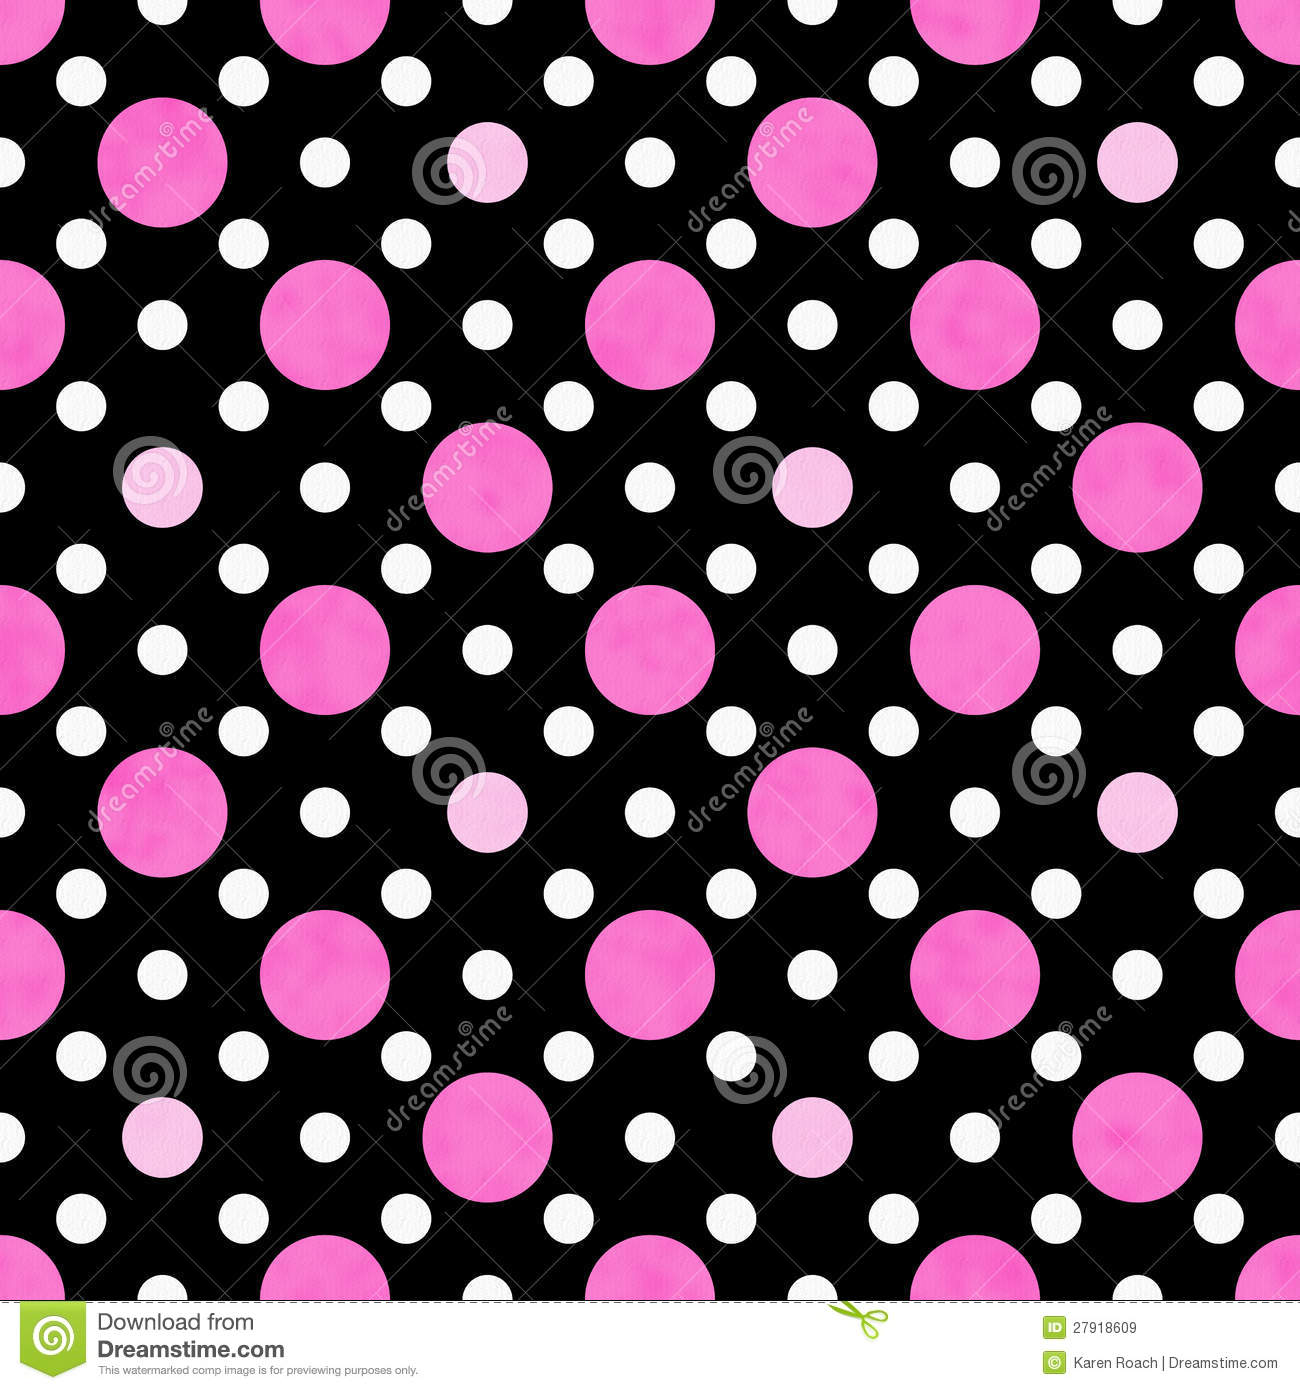 Pink, White and Black Polka Dot Fabric Background